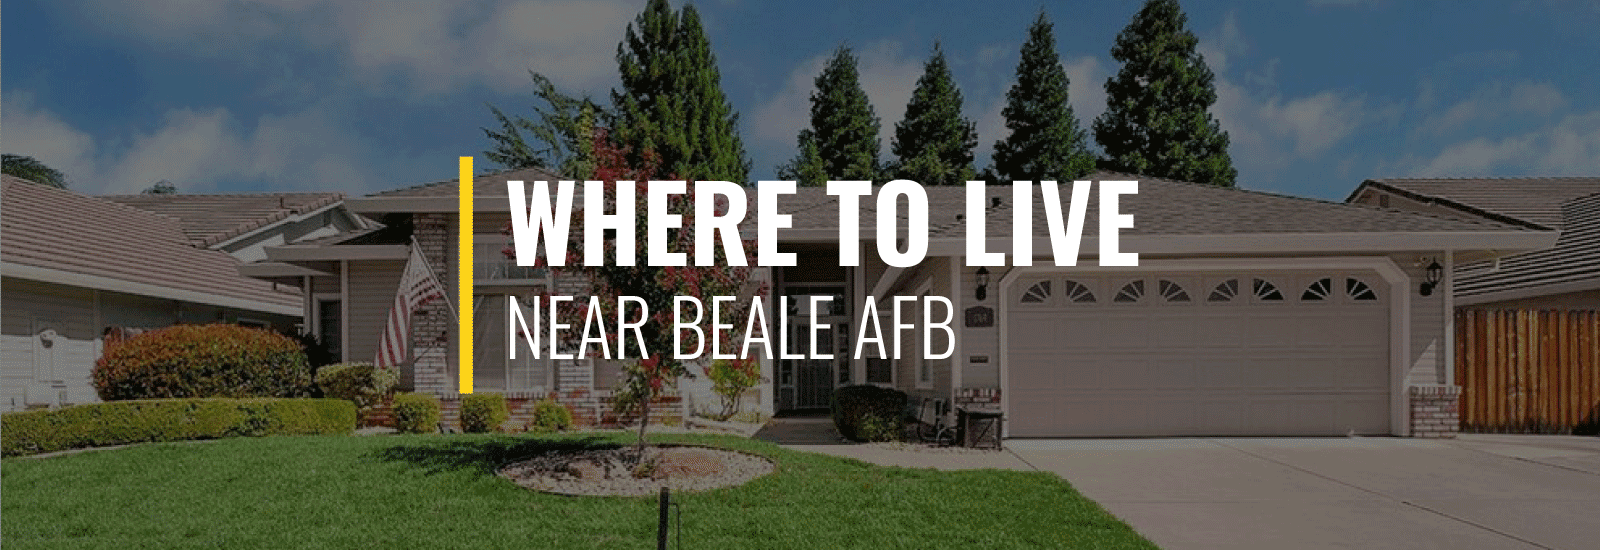 Where To Live Near Beale Air Force Base?